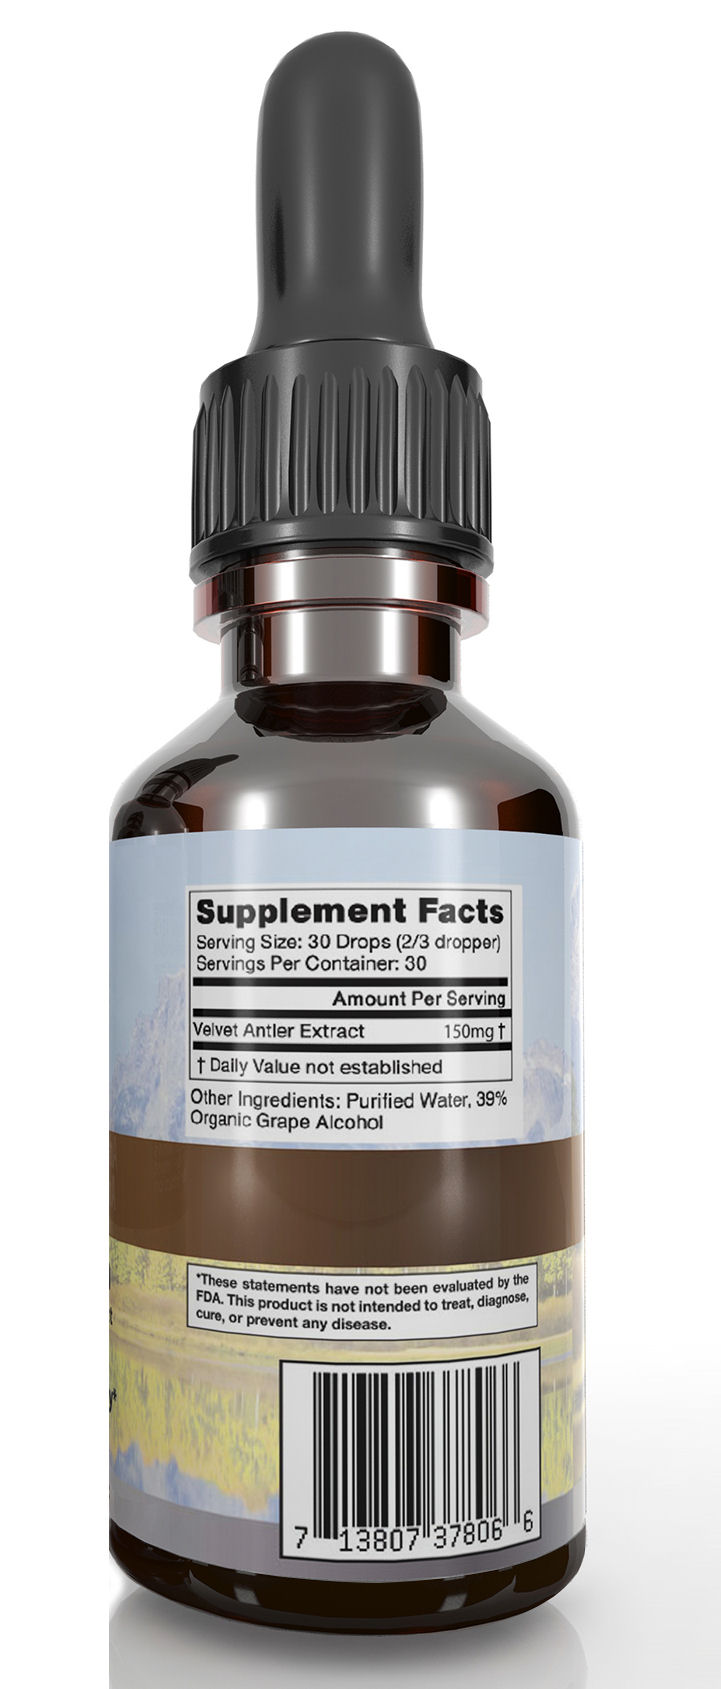 Deer Antler Velvet Extract Palladium Supplement Facts